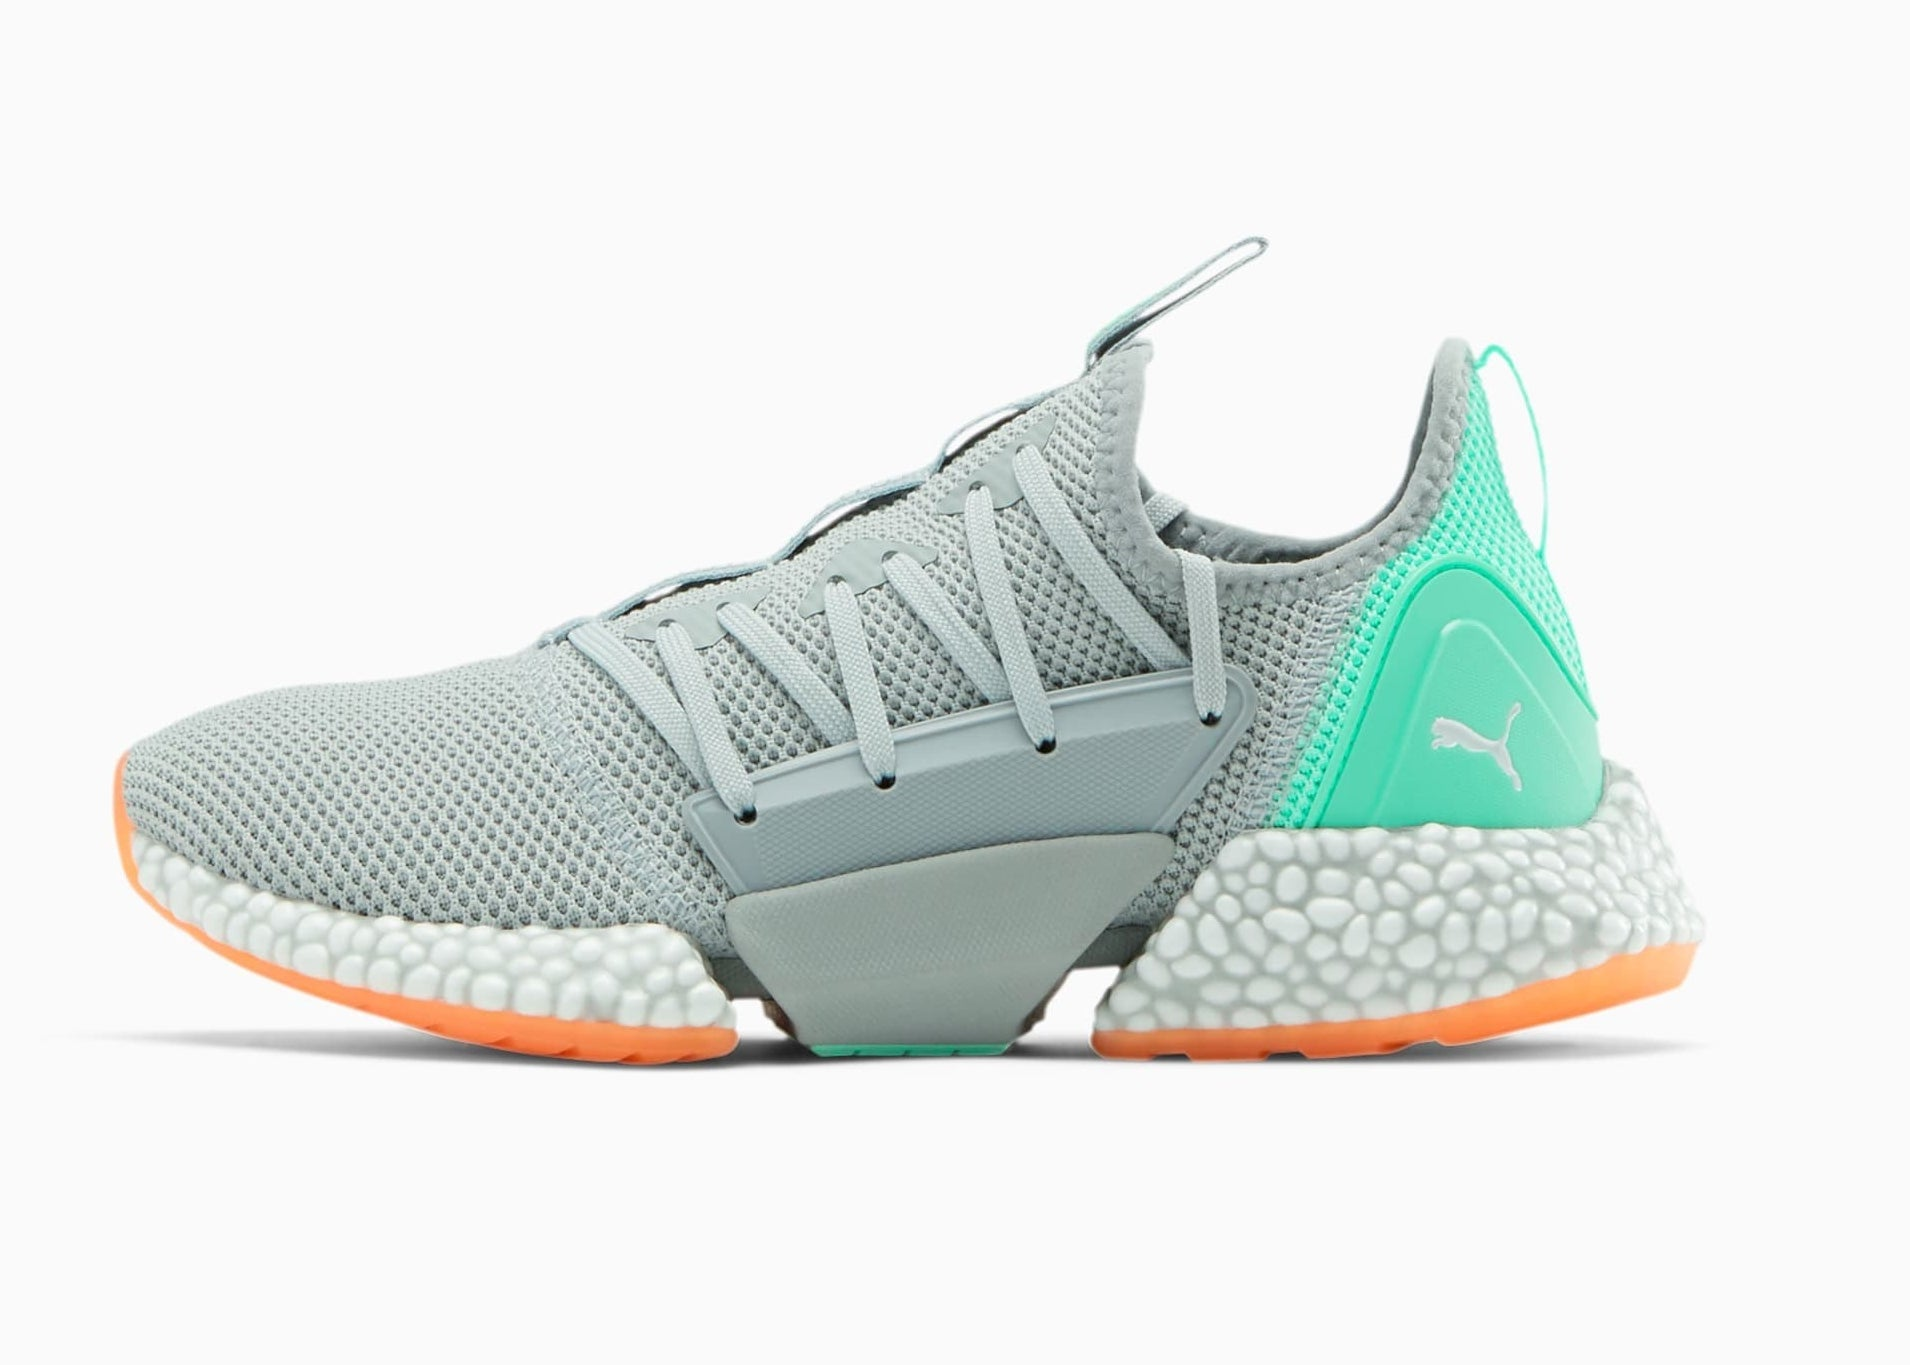 the grey and teal sneakers